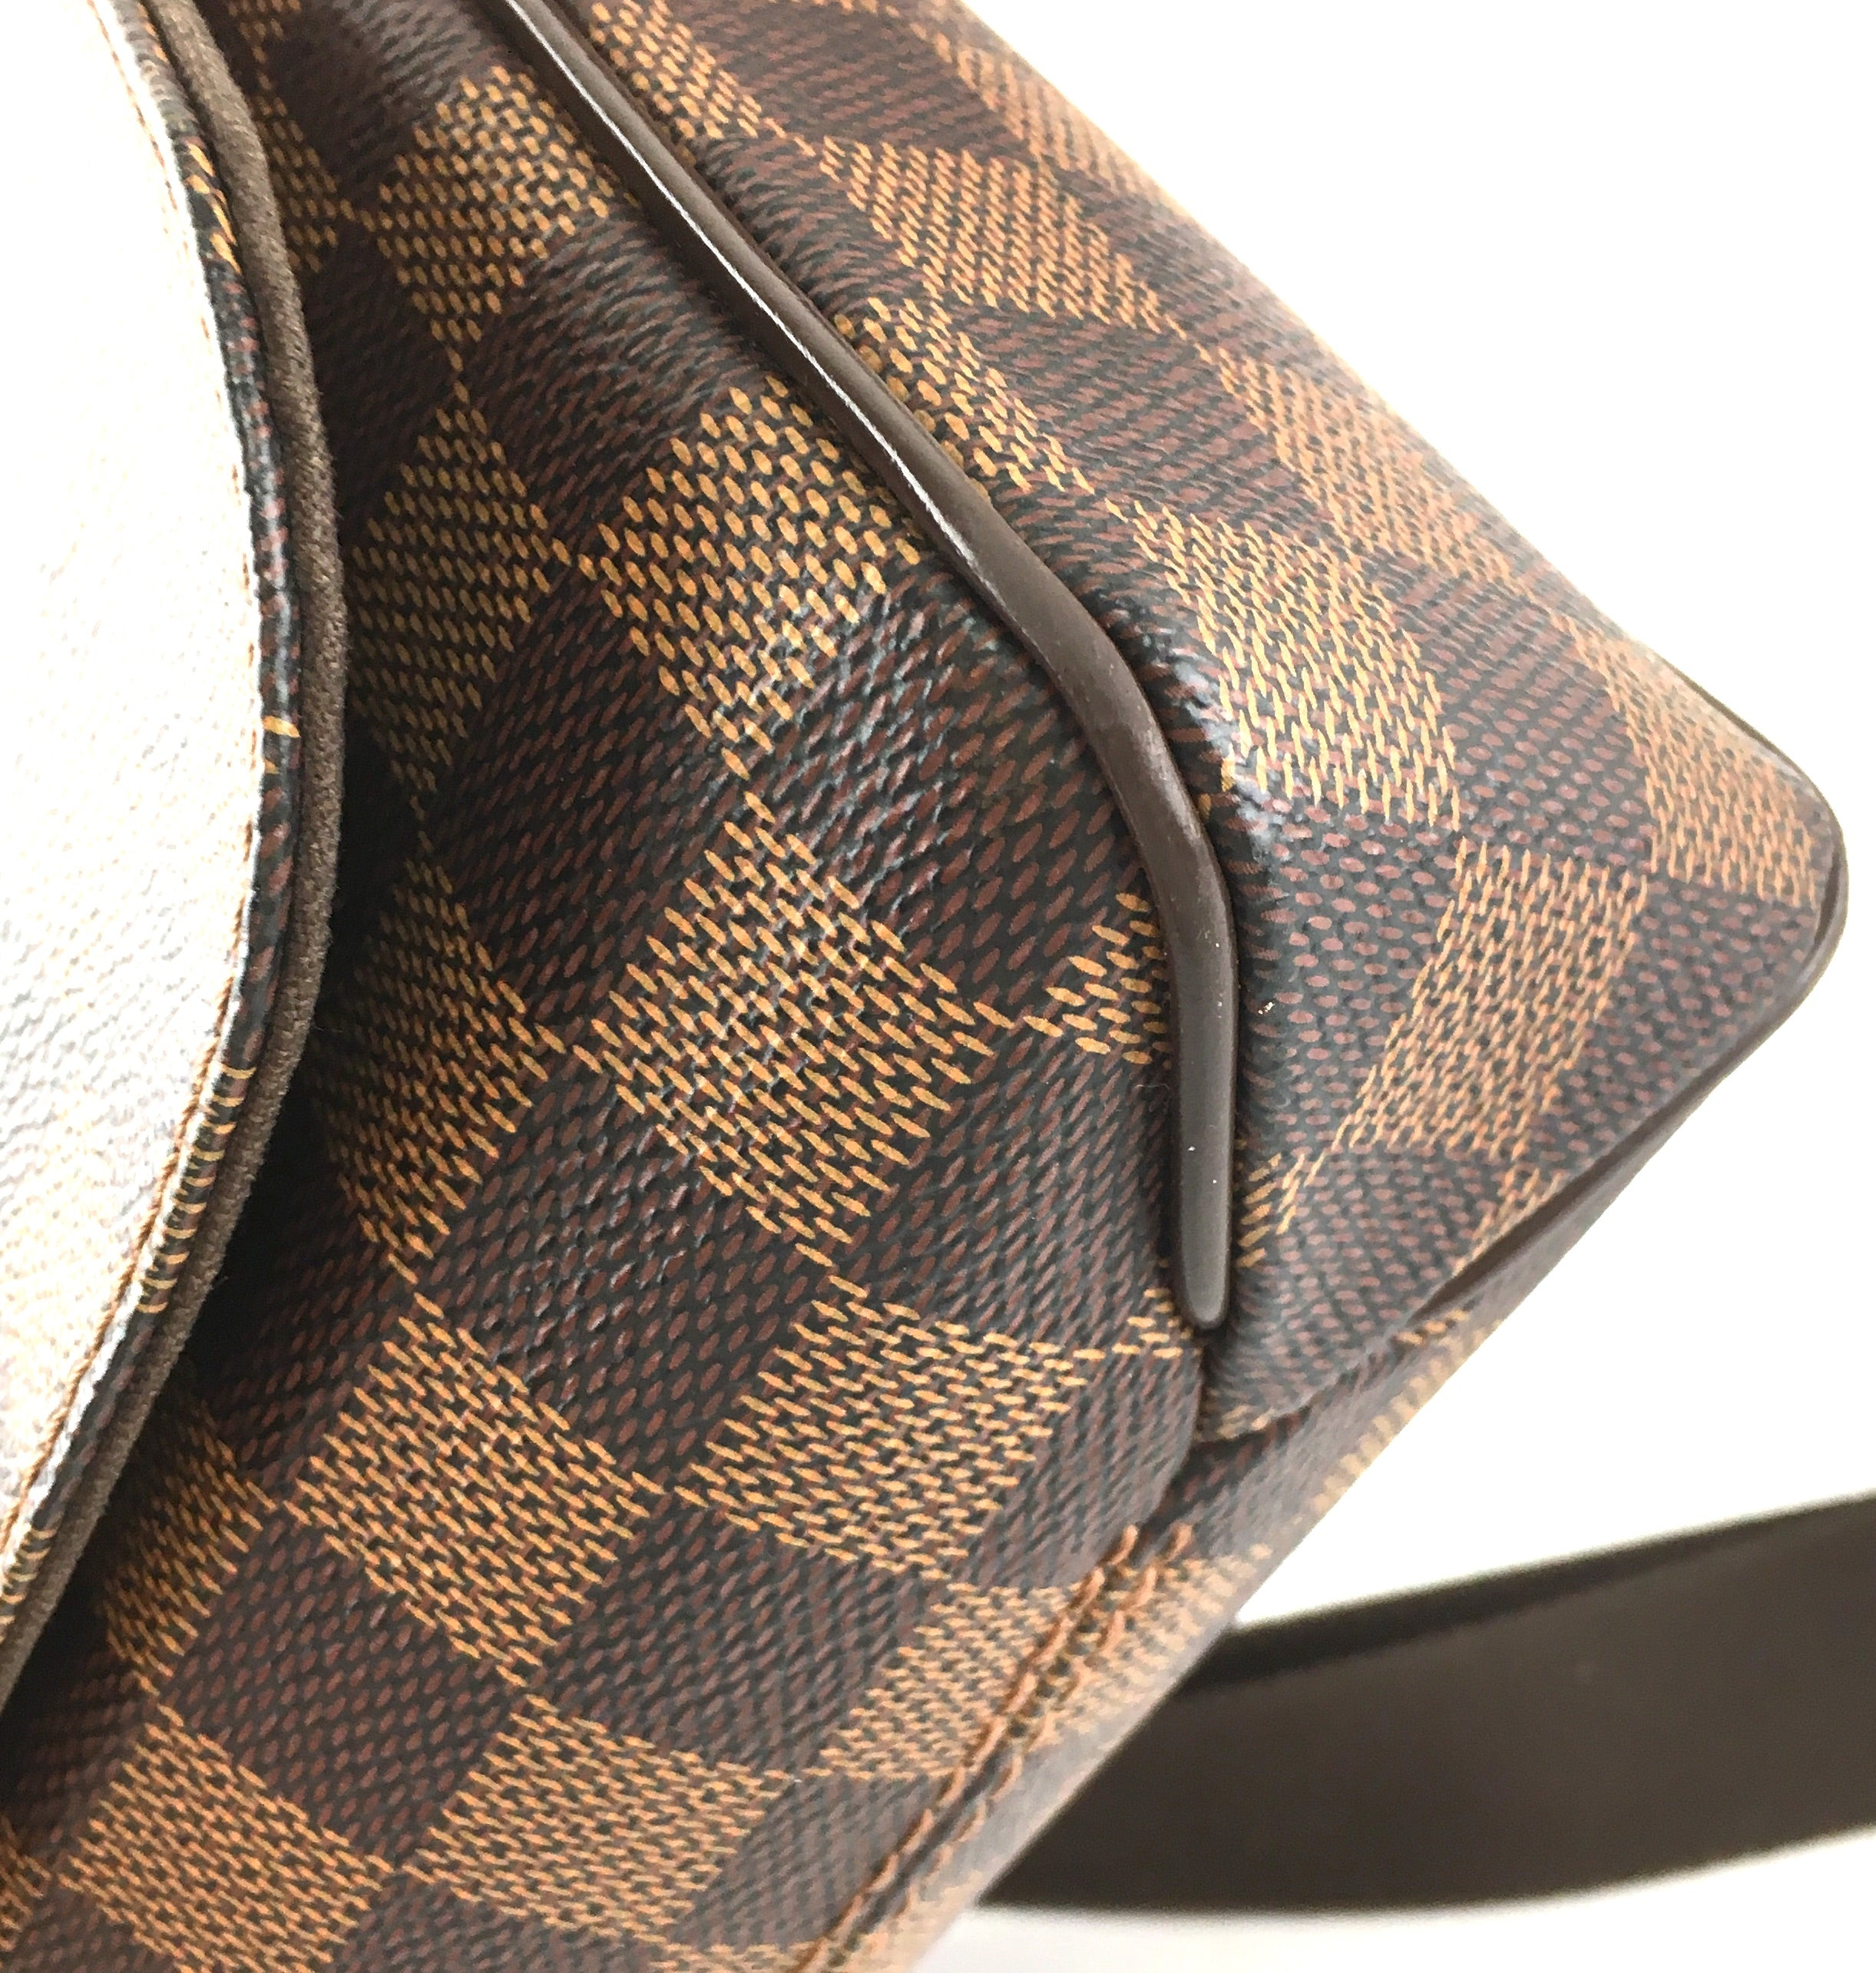 Louis Vuitton District PM Damier Ébène Canvas